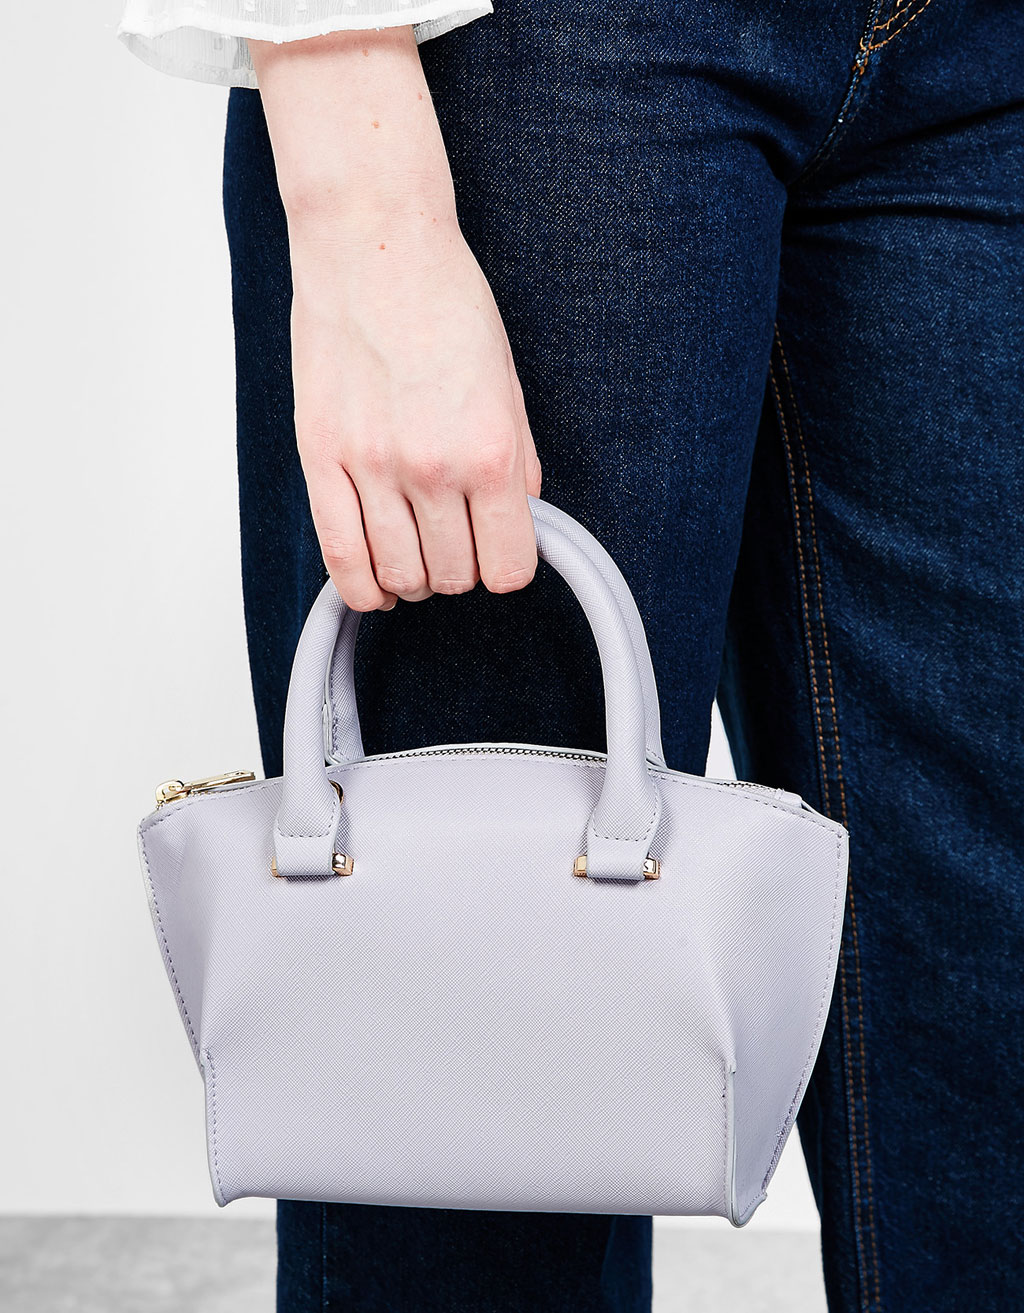 Textured bag with handles